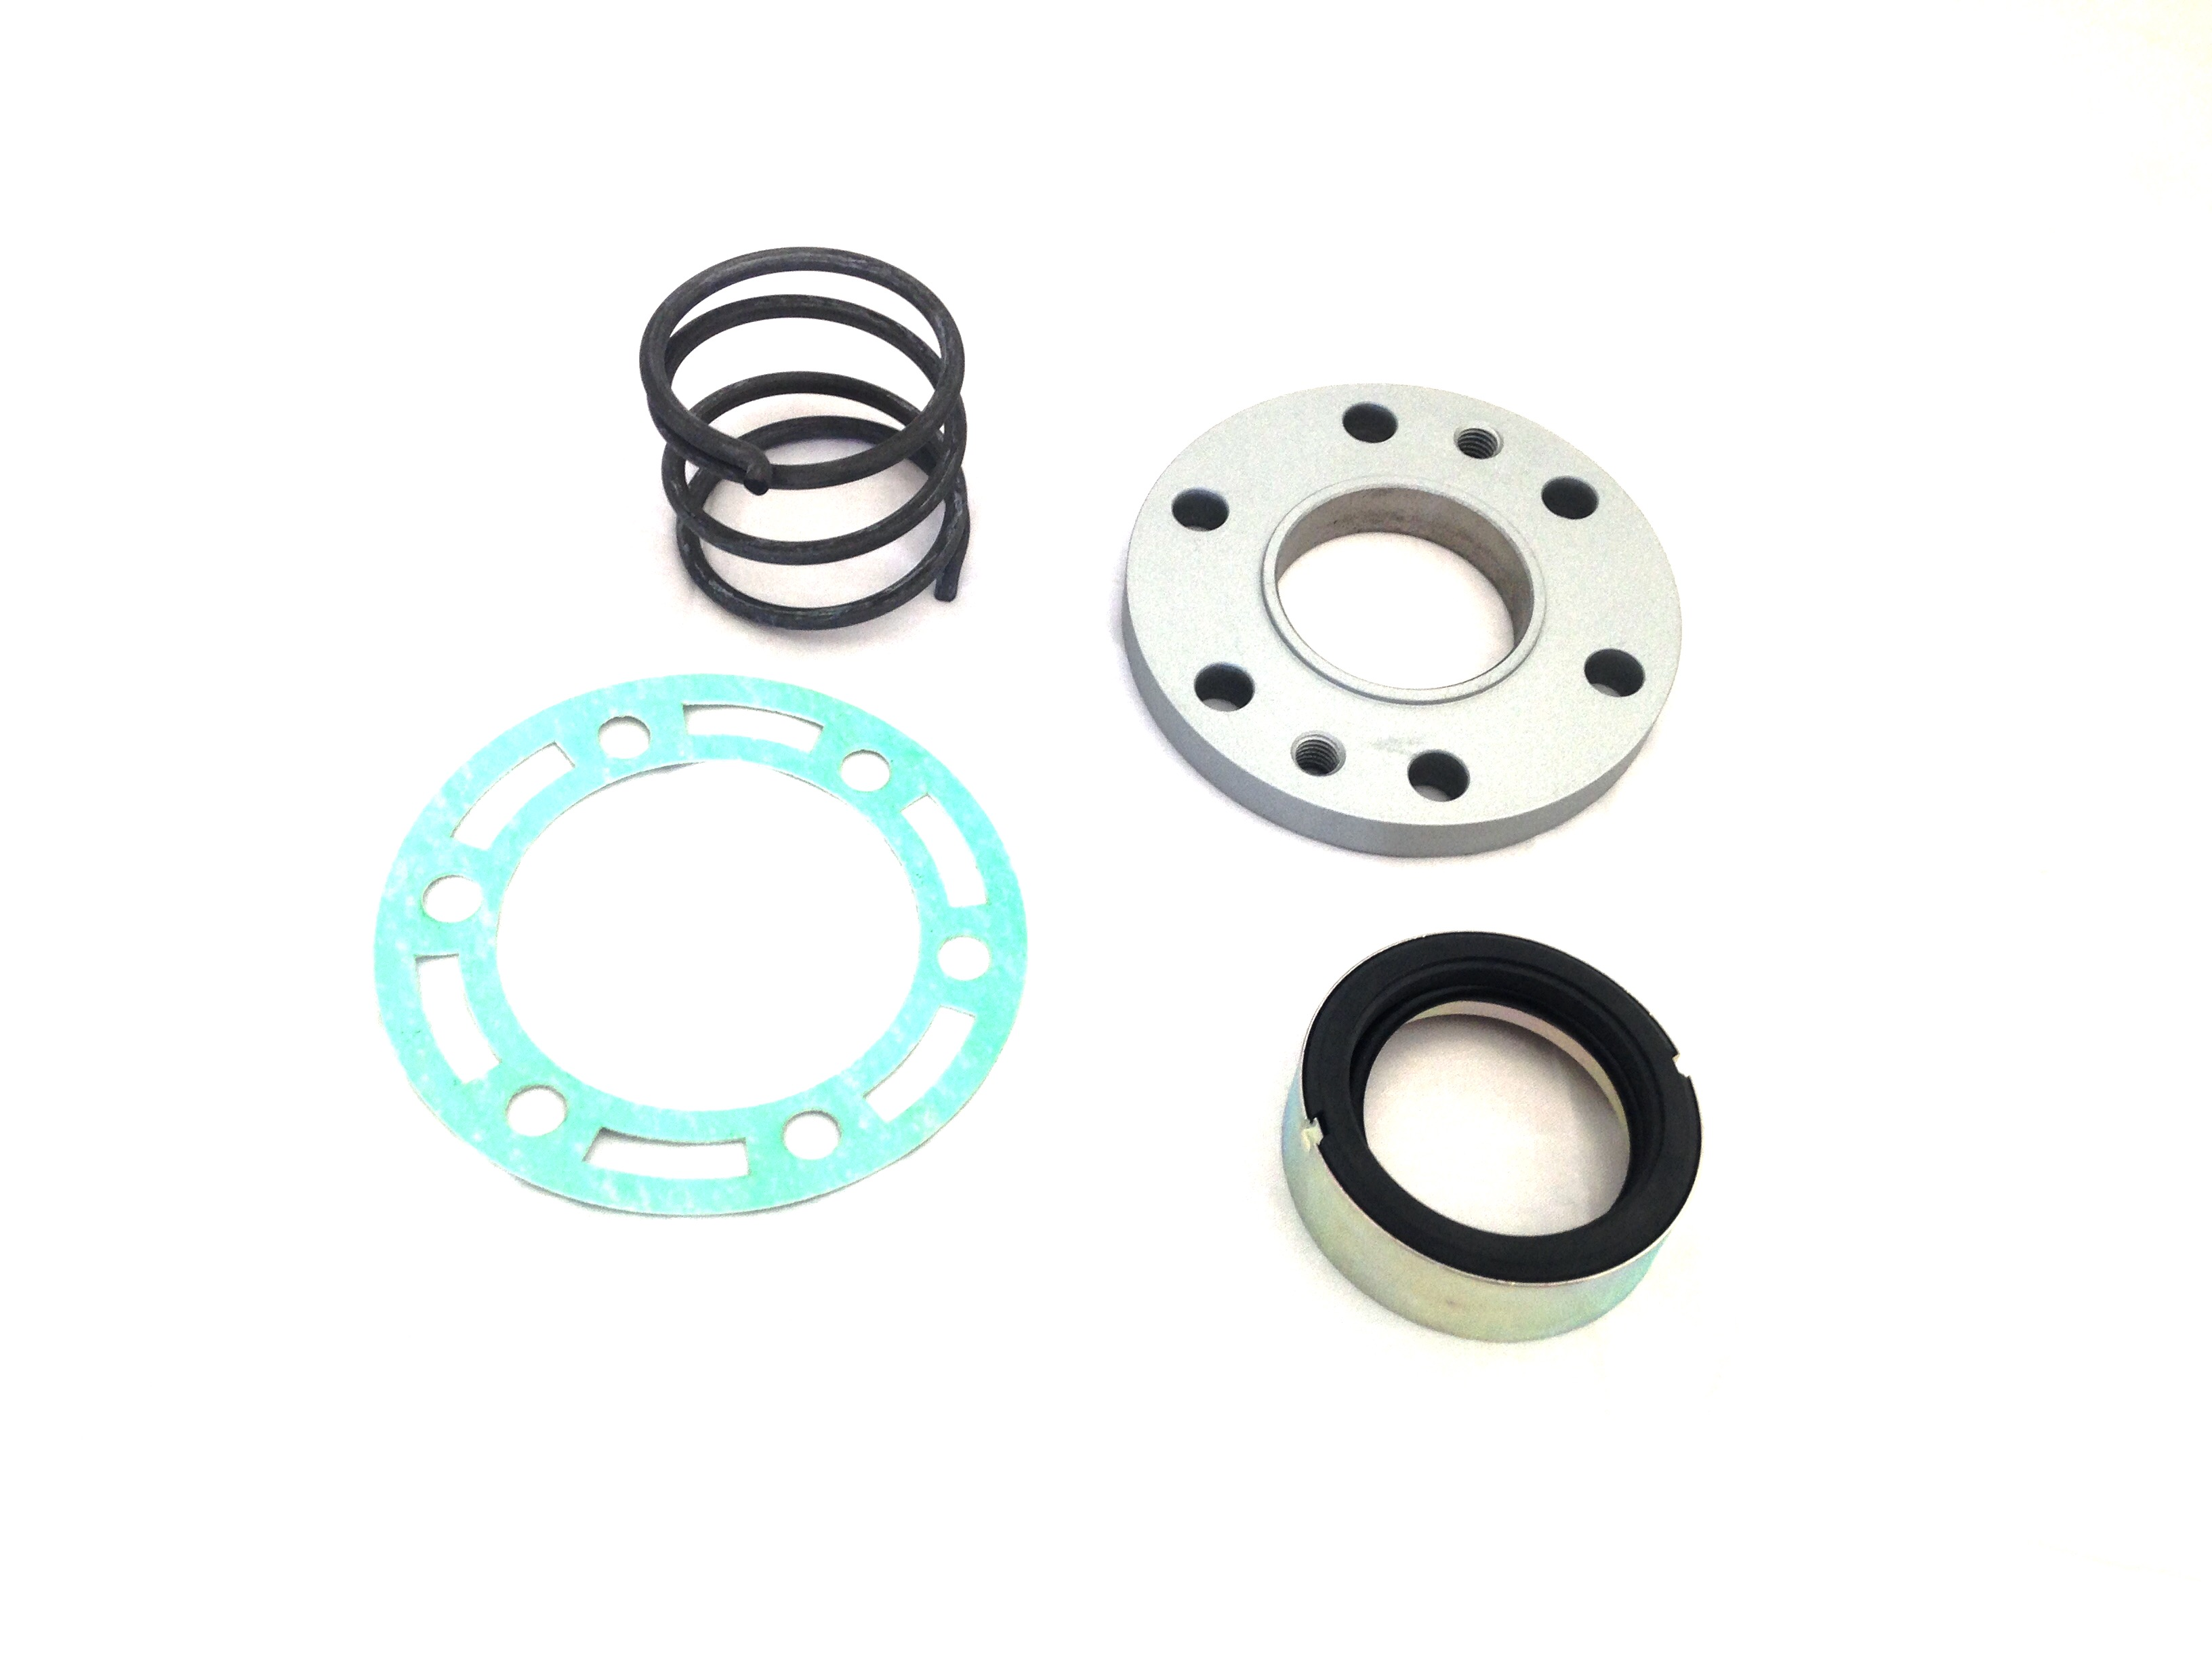 FK4 COMPRESSOR SHAFT SEAL KIT